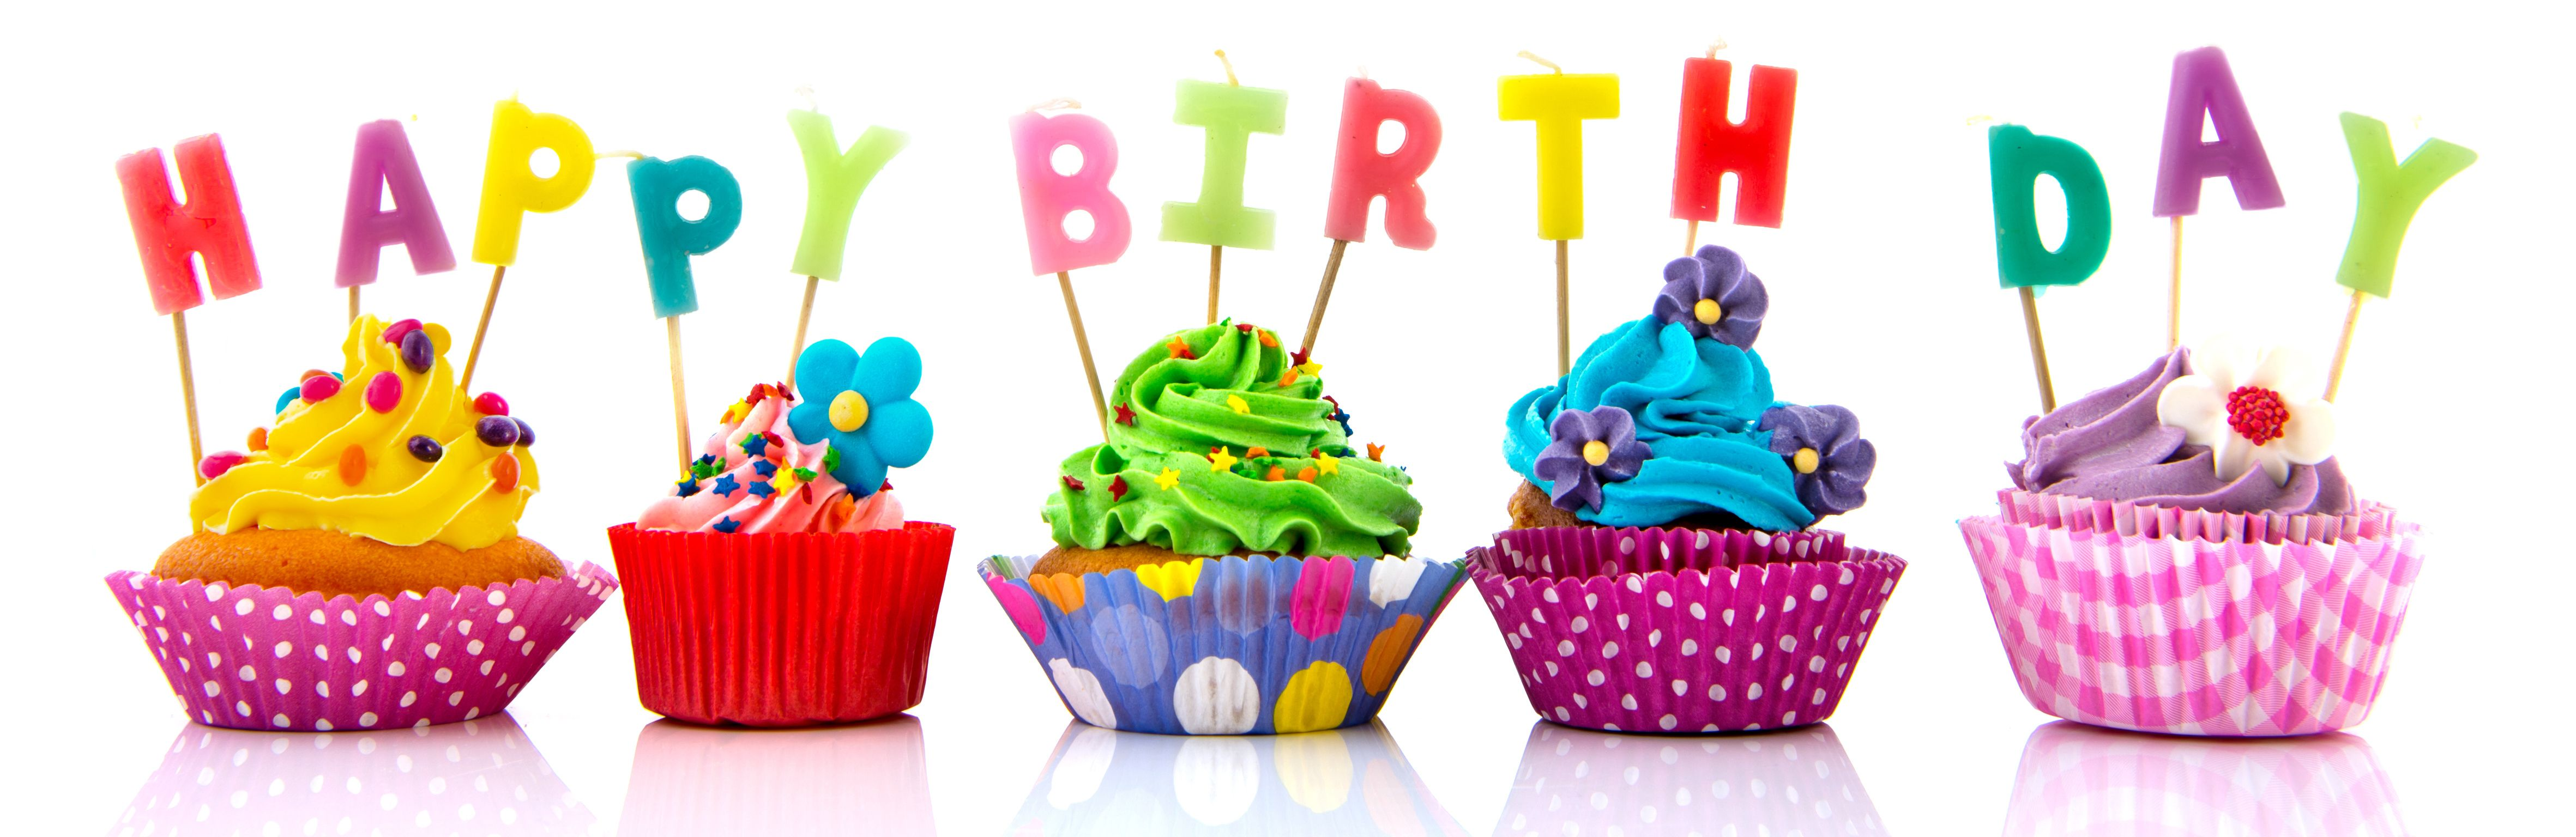 Happy Birthday Hd Wallpapers Download Free Happy Birthday Tumblr Pinterest Hd Wallpapers Happy Birthday Cupcakes Happy Birthday Fun Happy Birthday Hd